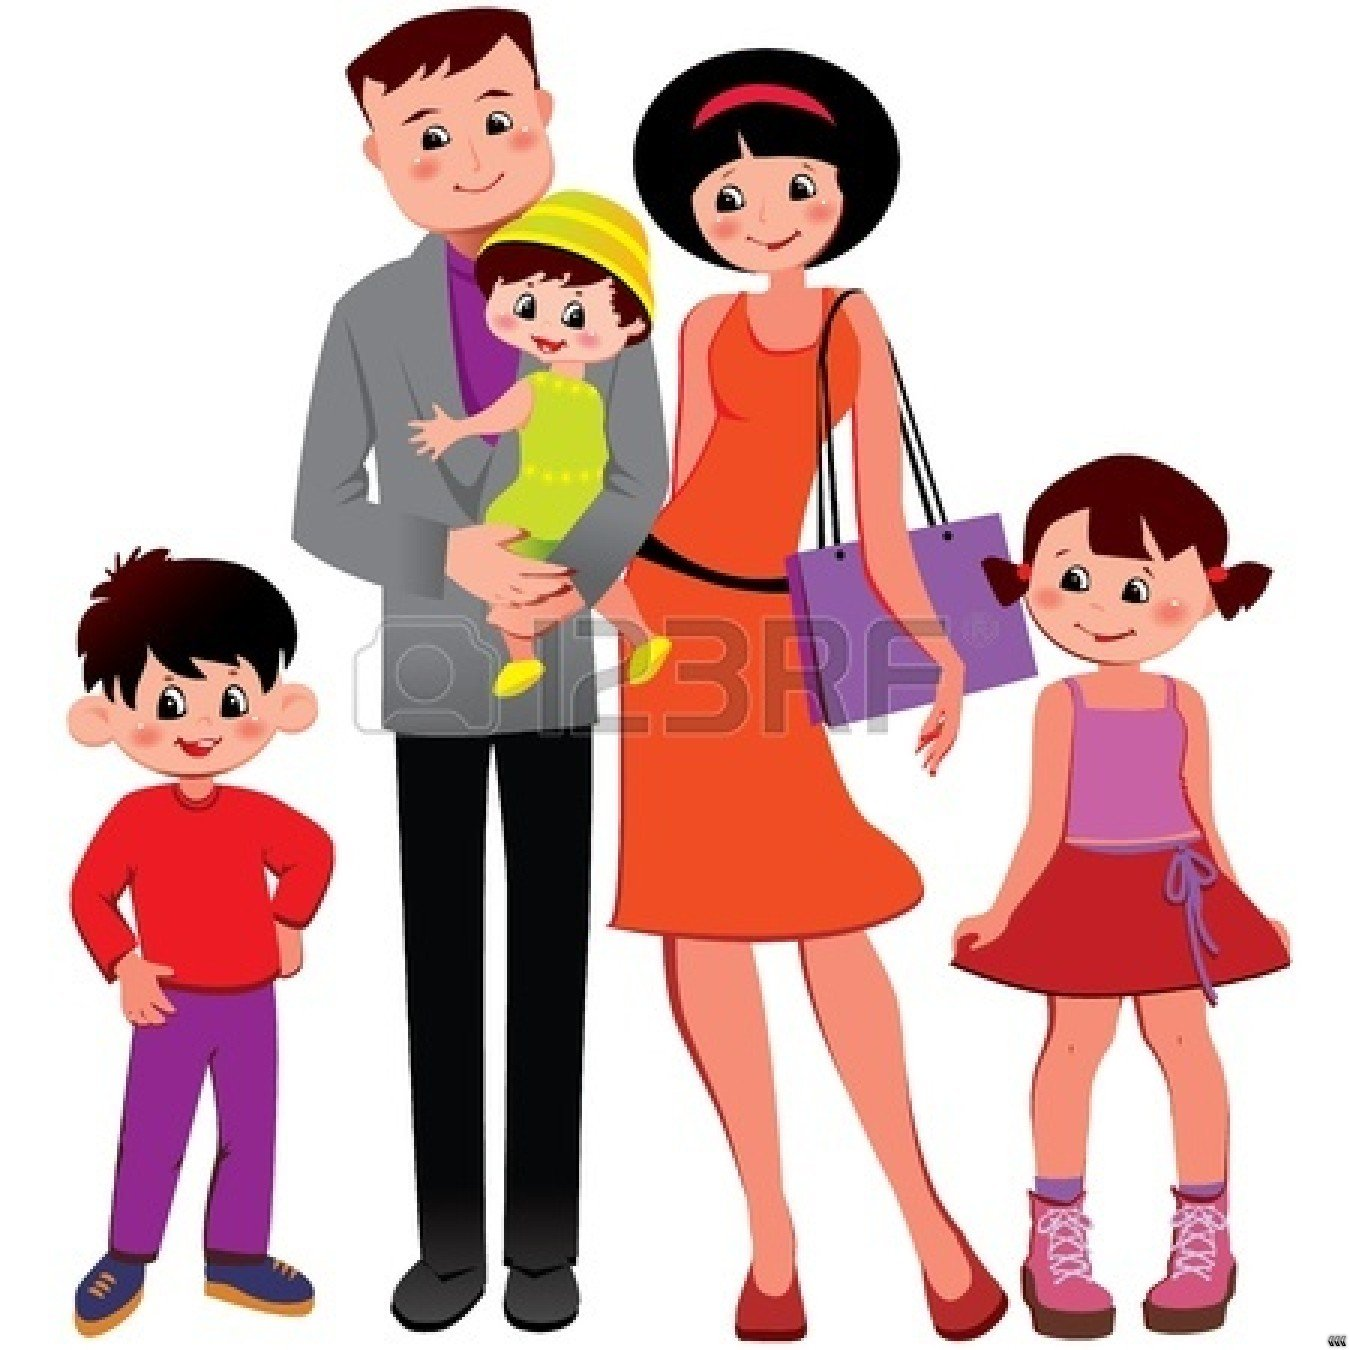 Working together happy family clipart free Family Clipart Images | Free download best Family Clipart ... free